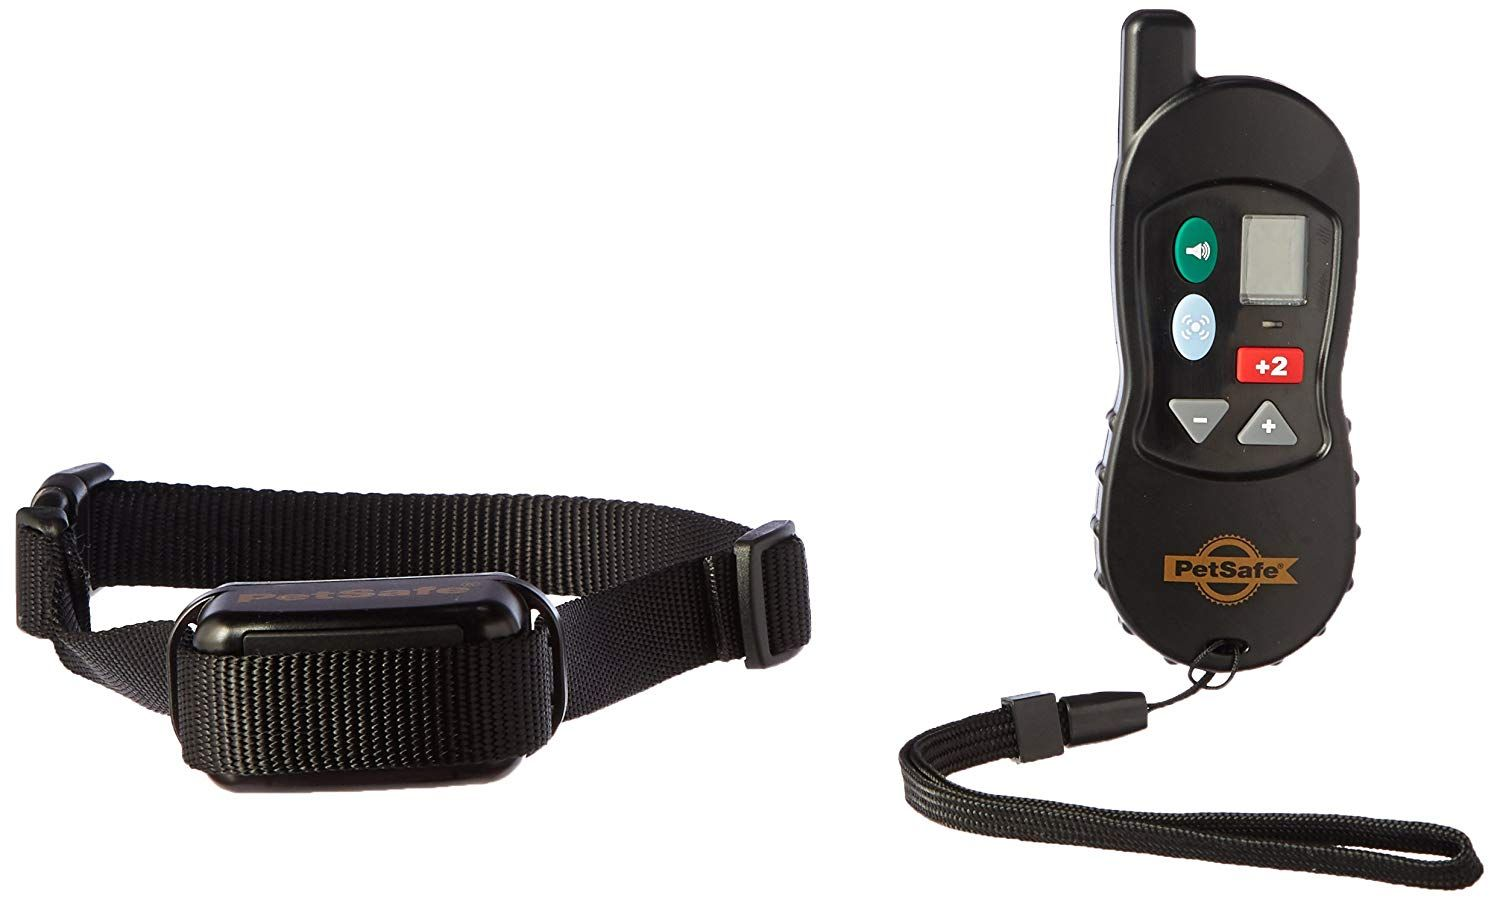 Petsafe Vibration Dog Training Collar Read More Reviews Of The